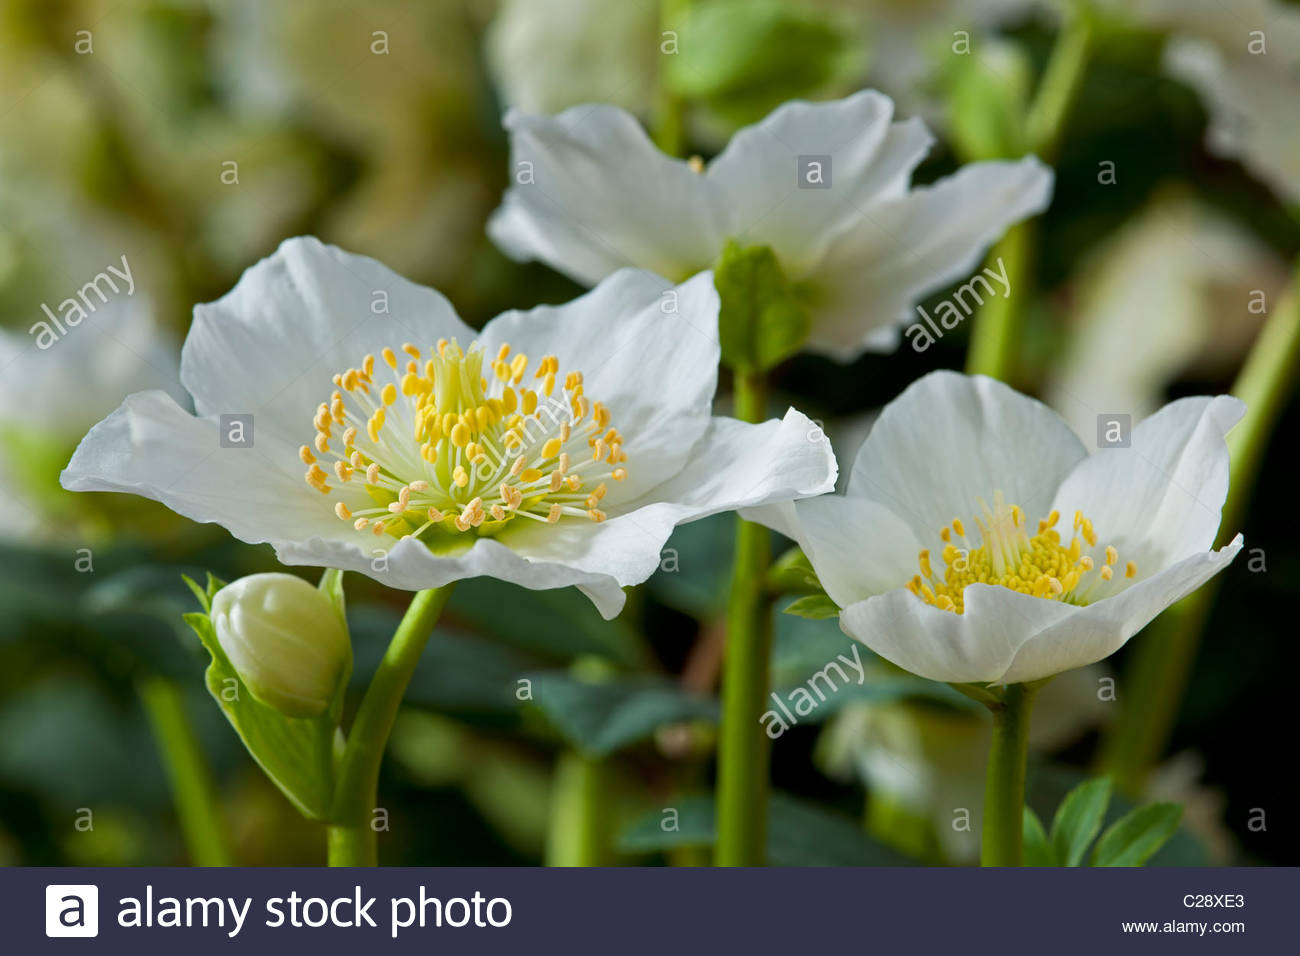 helleborus niger stockfotos helleborus niger bilder alamy. Black Bedroom Furniture Sets. Home Design Ideas